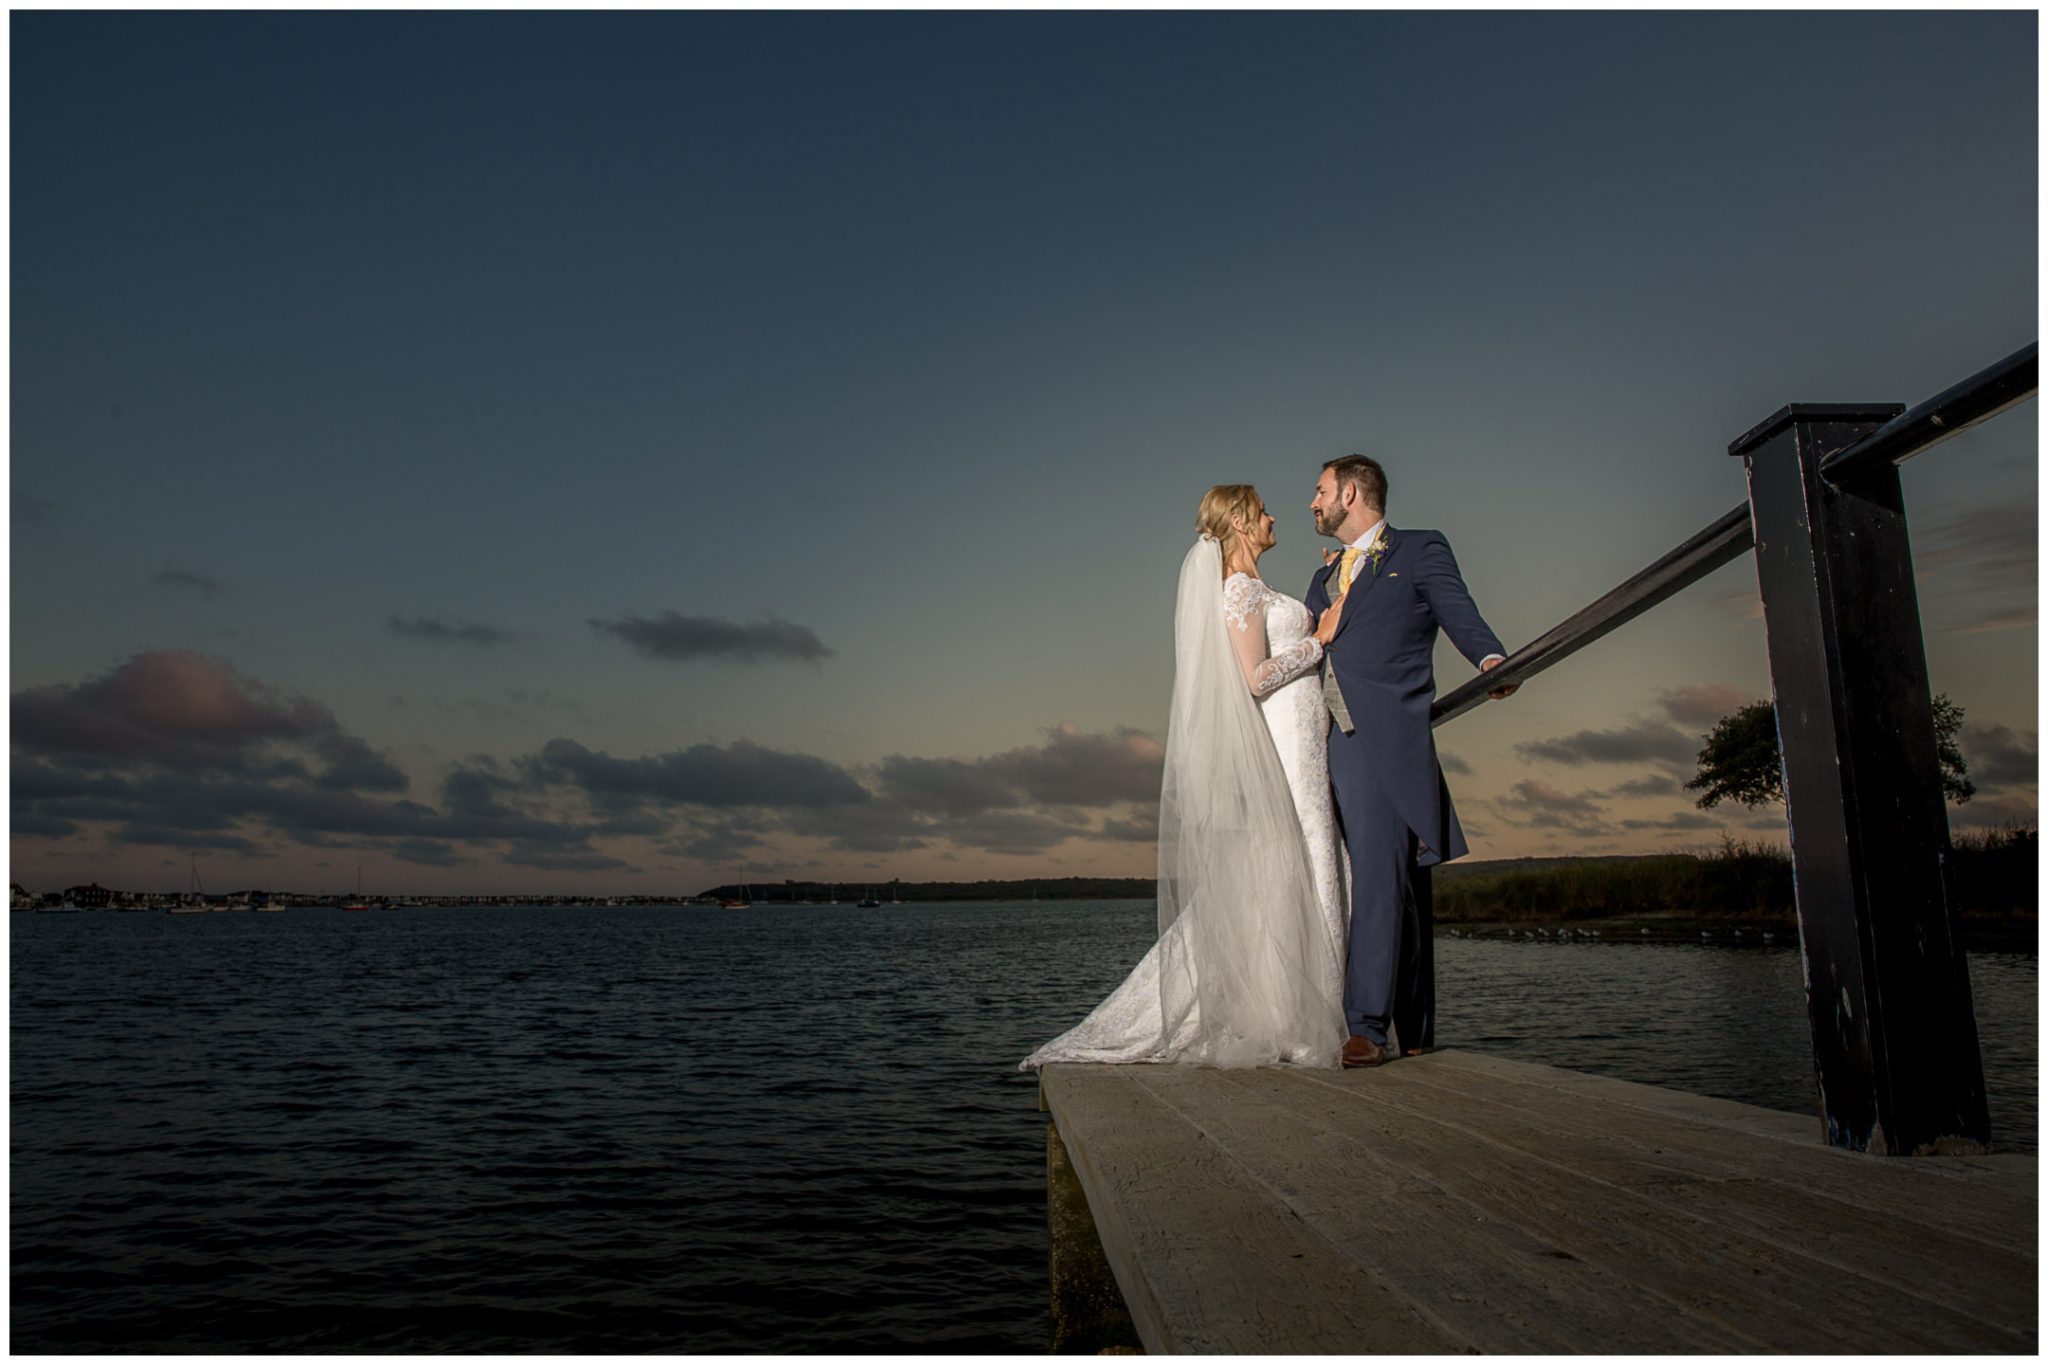 Couple stood on the jetty by the water in the evning light